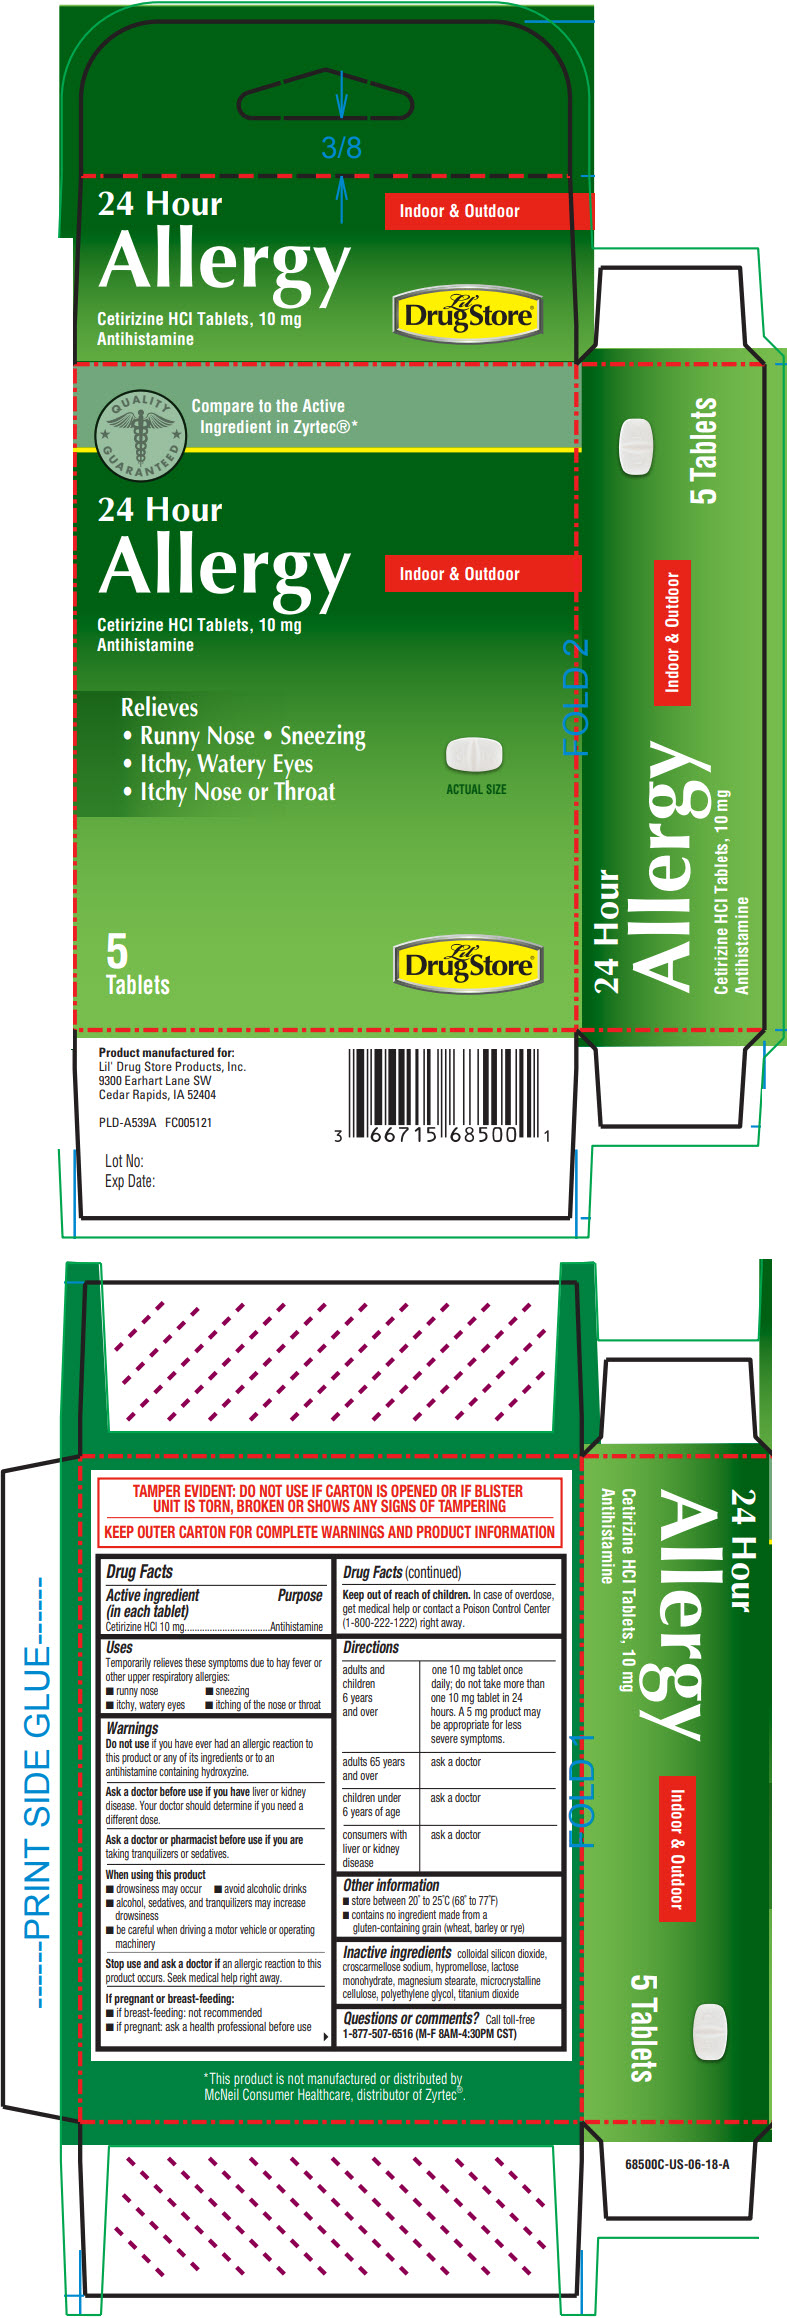 Cetirizine hydrochloride - Lil Drug Store Products (24 Hour Allergy)